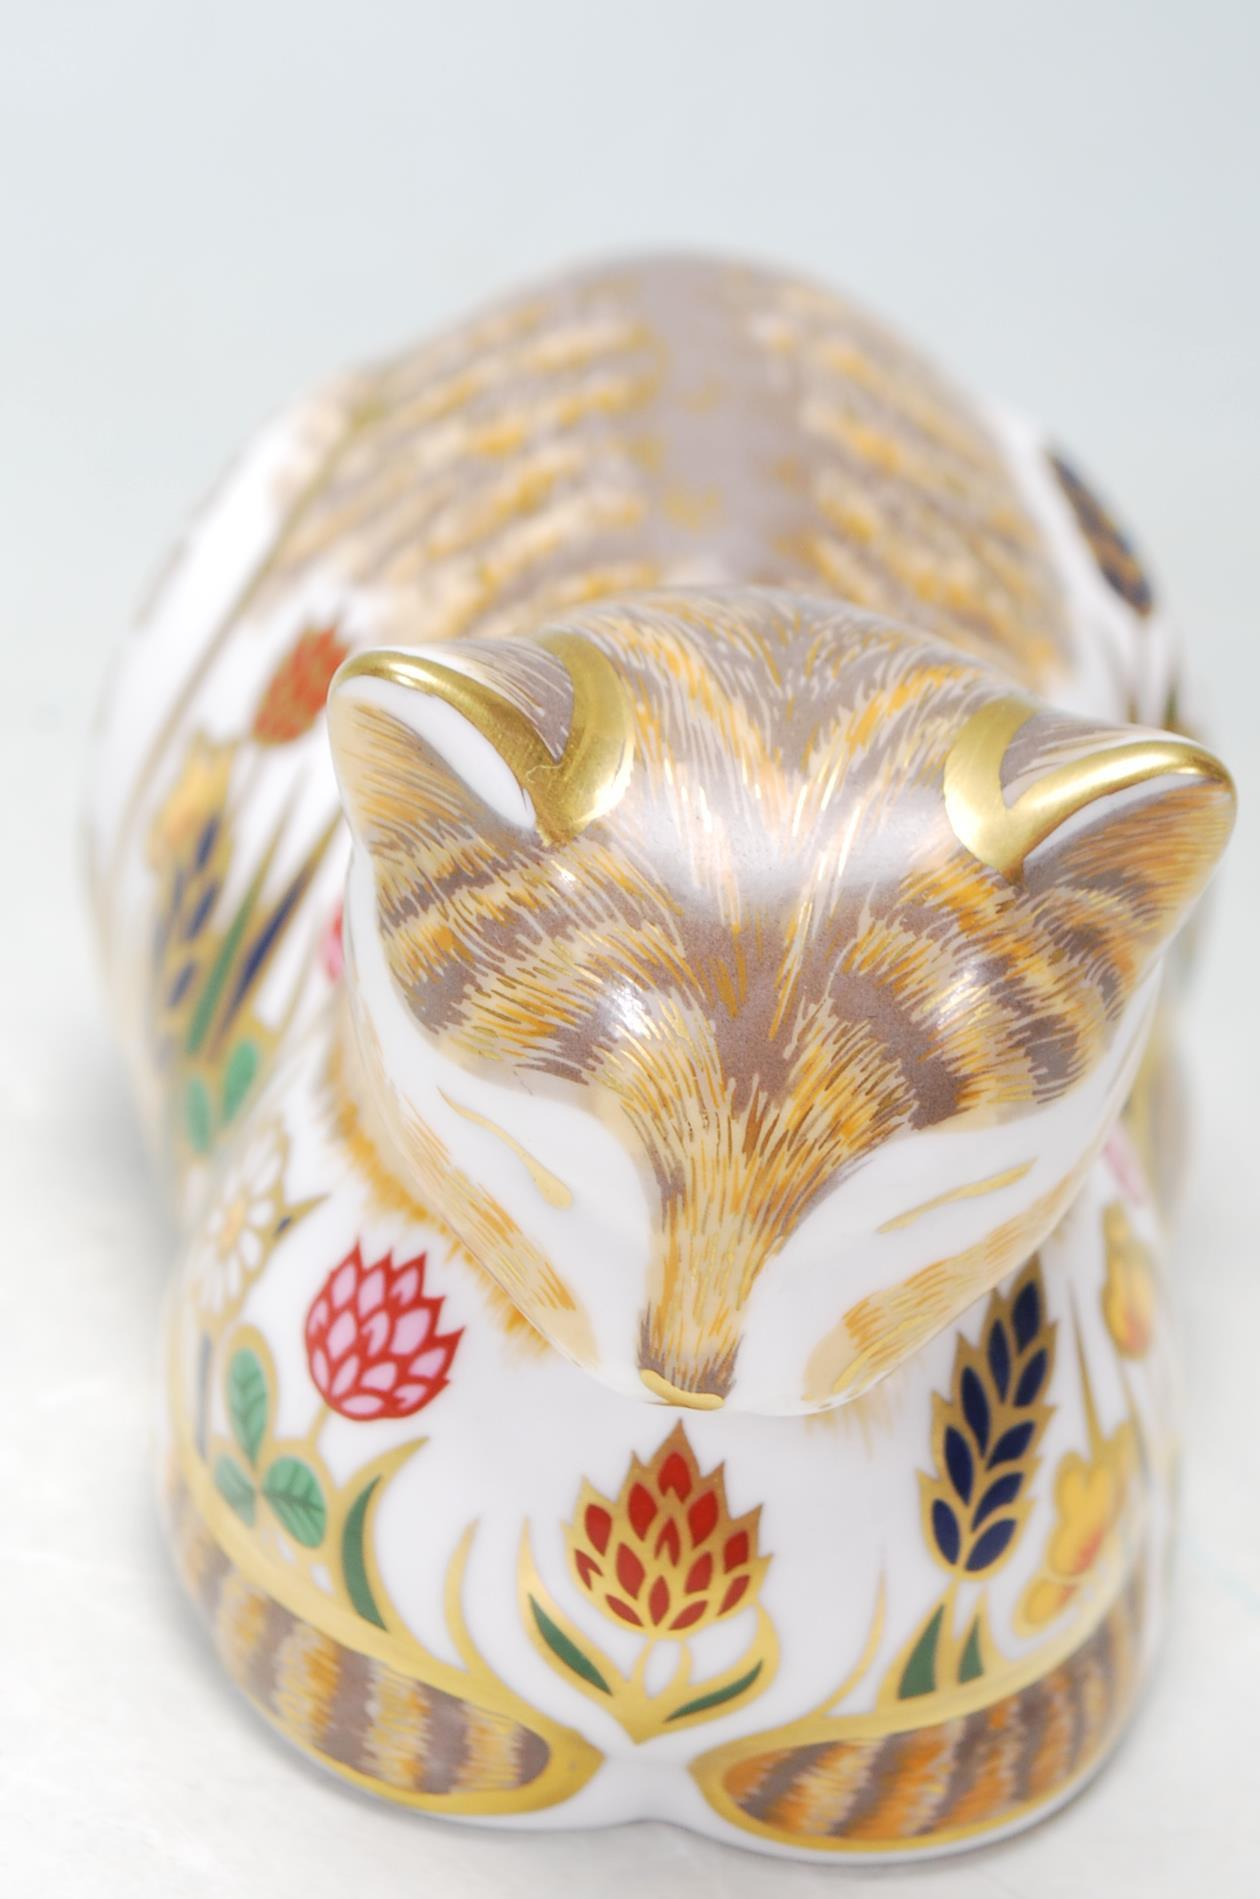 ROYAL CROWN DERBY COTTAGE CAT PAPERWEIGHT WITH GOLD STOPPER - Image 3 of 5